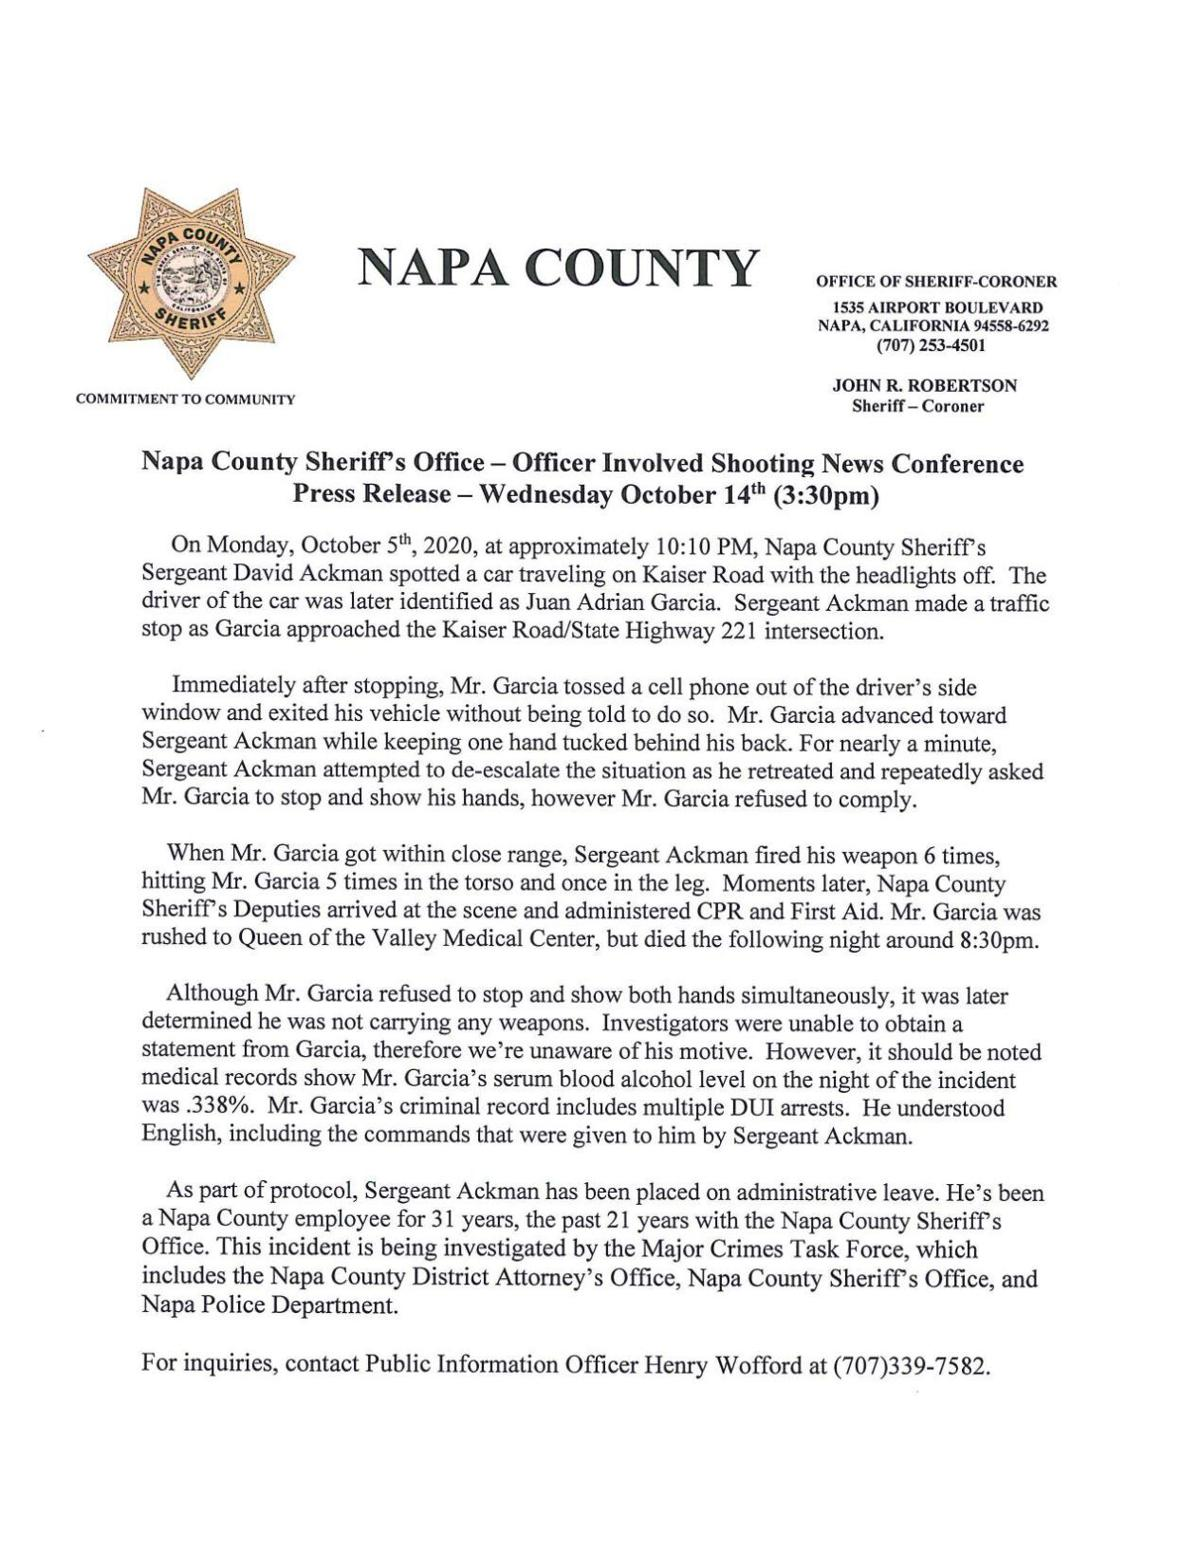 Napa County Sheriff's Office Press Release: Officer-involved shooting